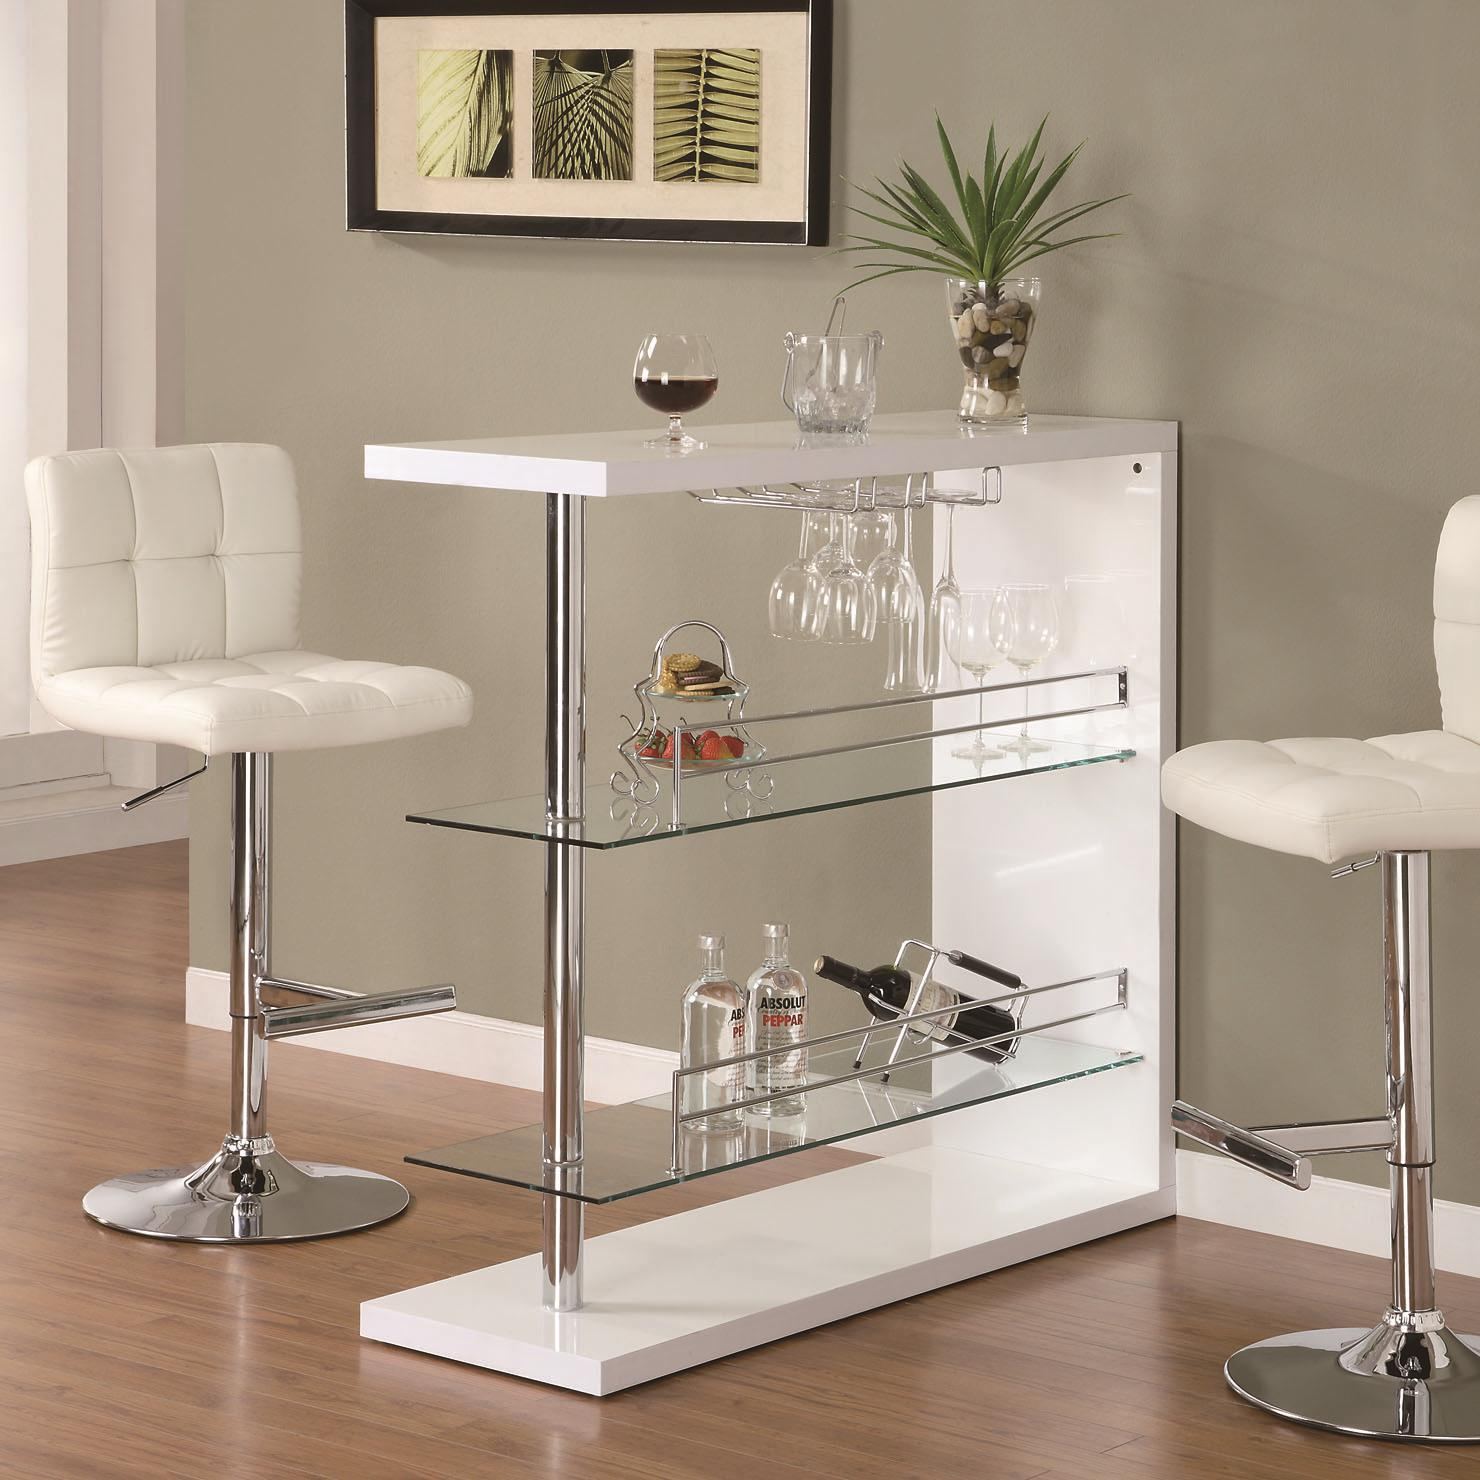 Bar Units And Bar Tables Rectangular Bar Unit With 2 Shelves And Wine  Holder By Coaster At Rooms For Less